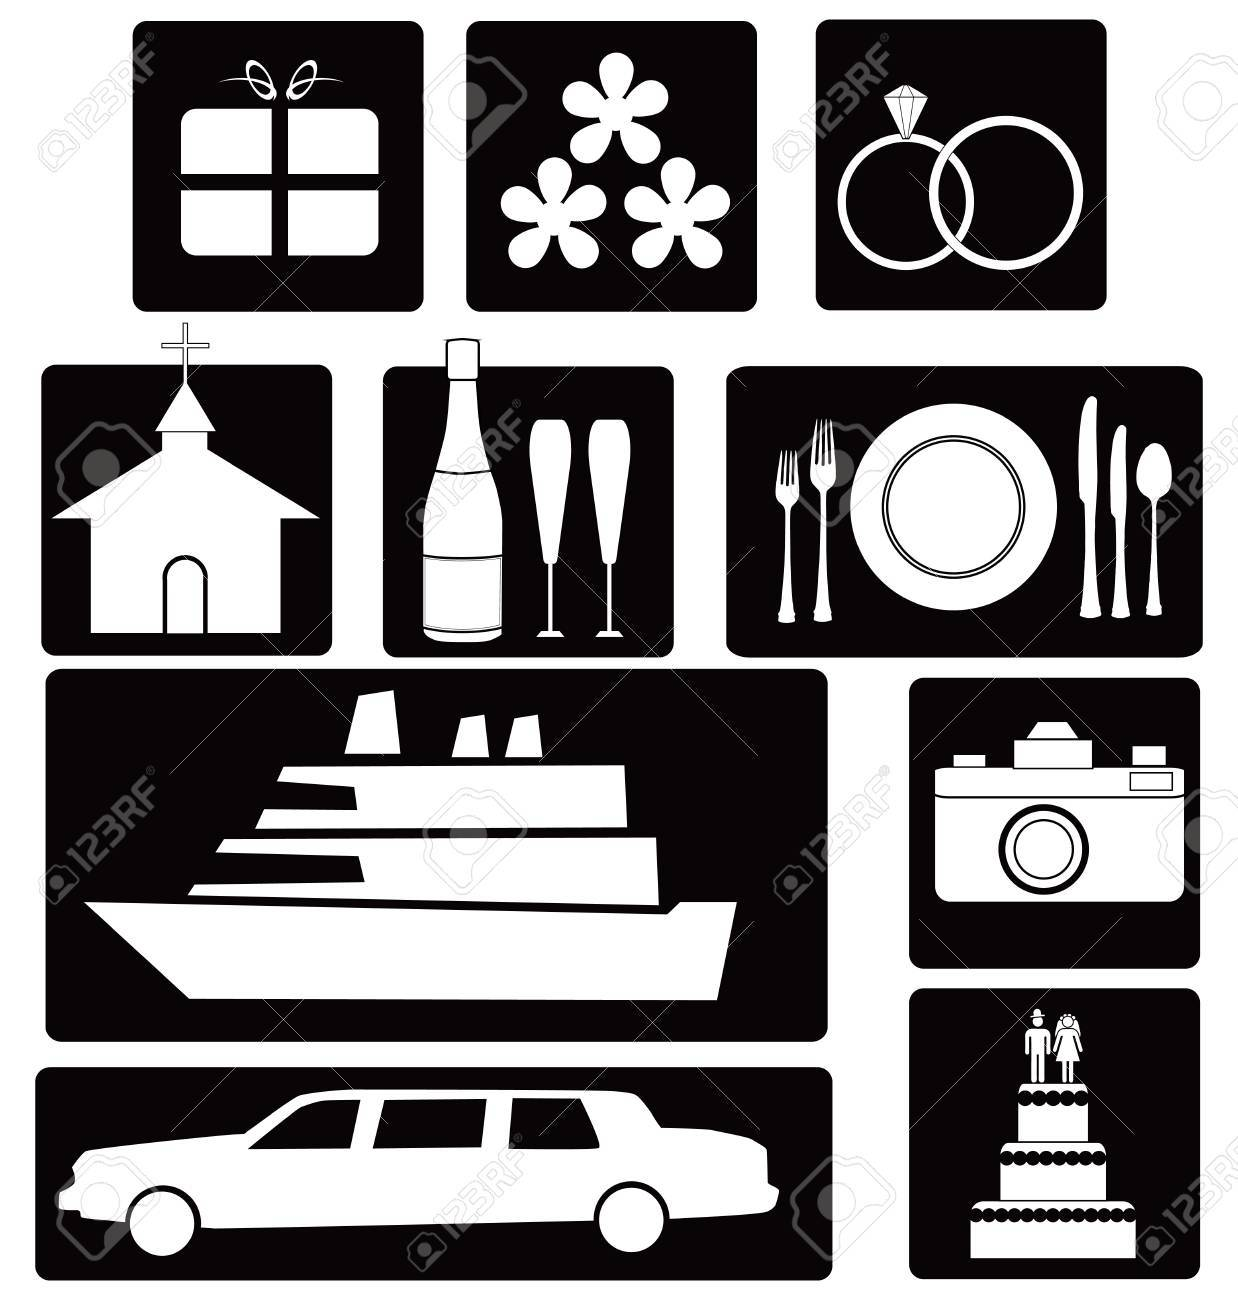 A set of wedding icons and symbols for design work illustration. Stock Vector - 13643266